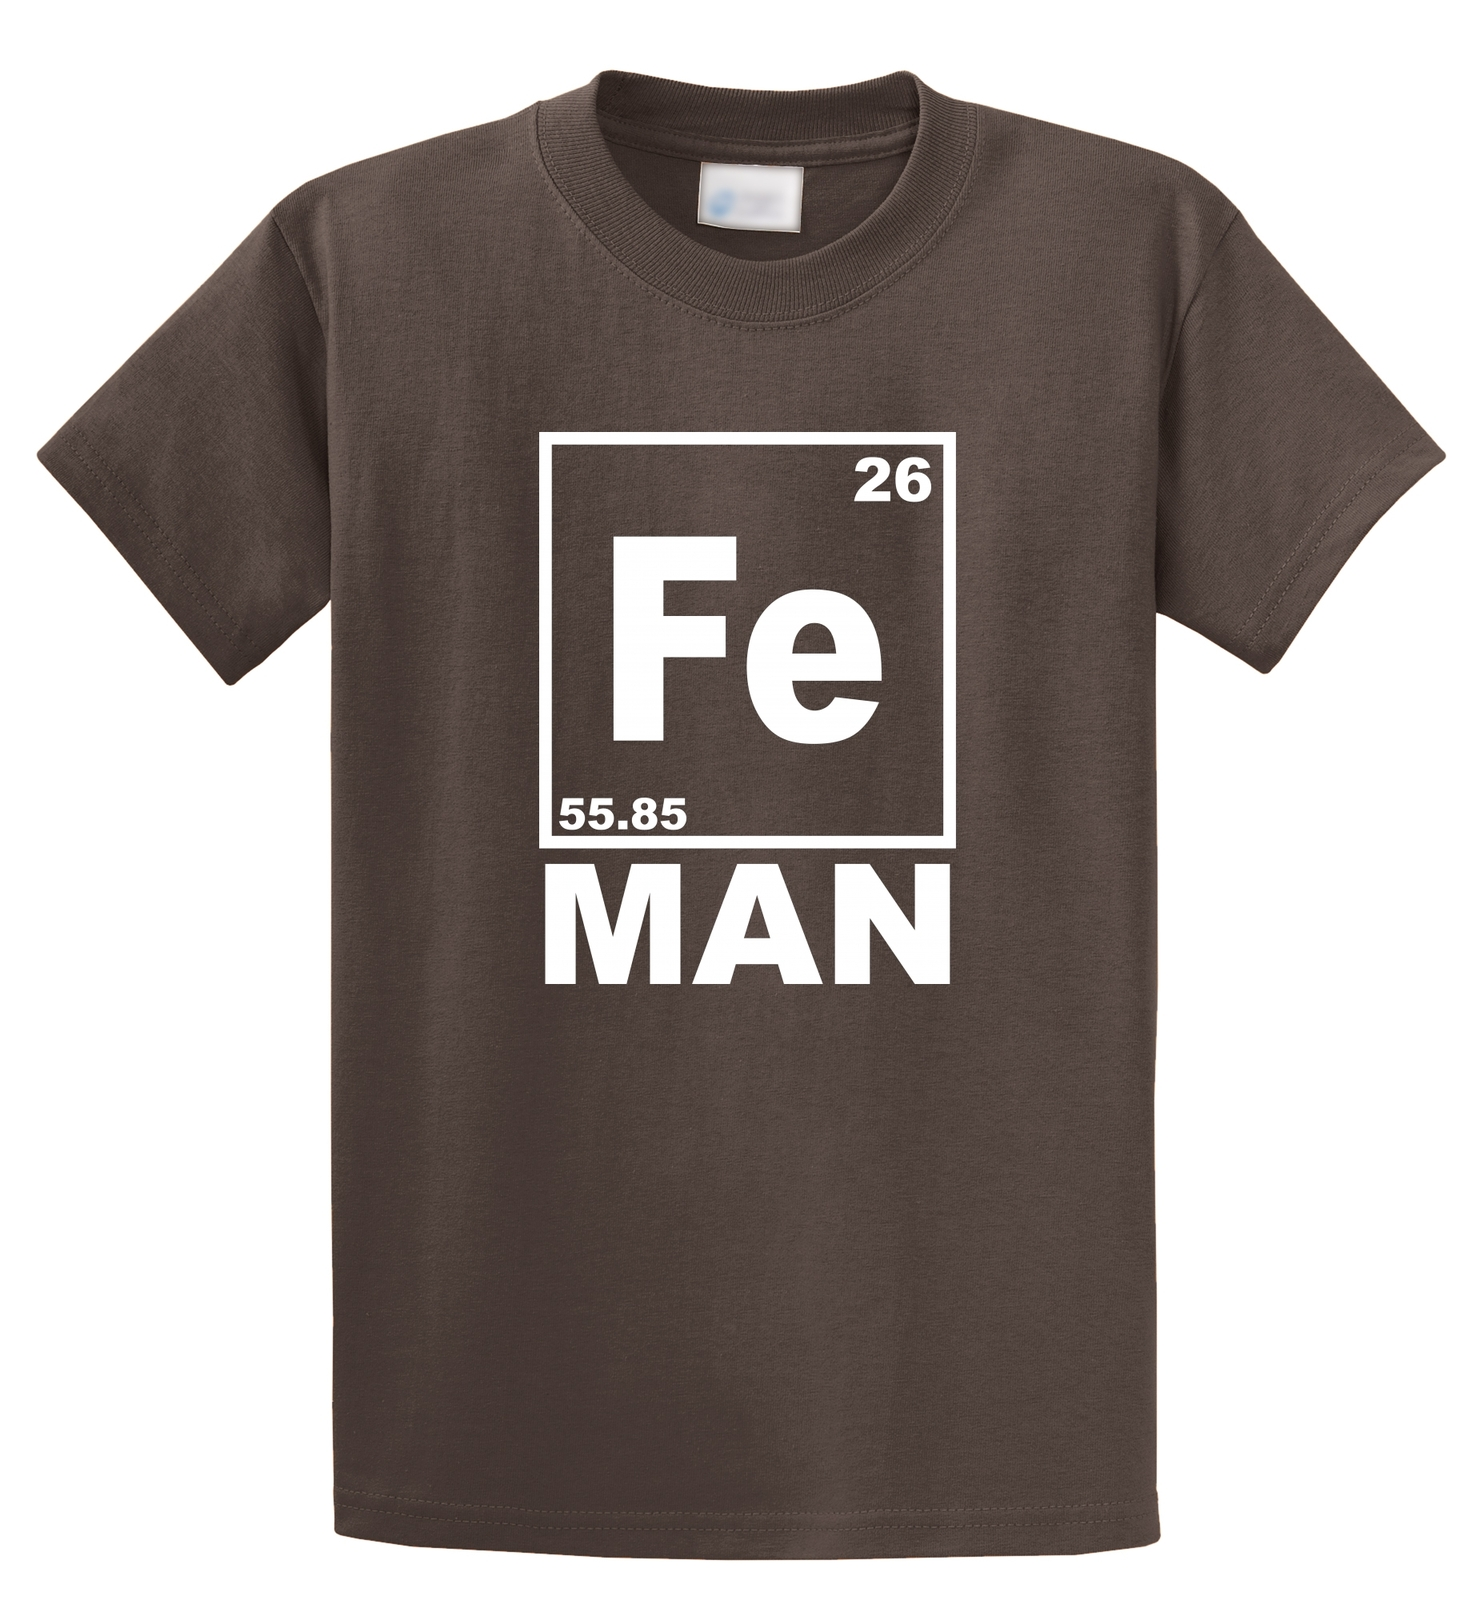 Fe Man Funny T Shirt Iron Man Chemistry Periodic Table Elements for sale  USA